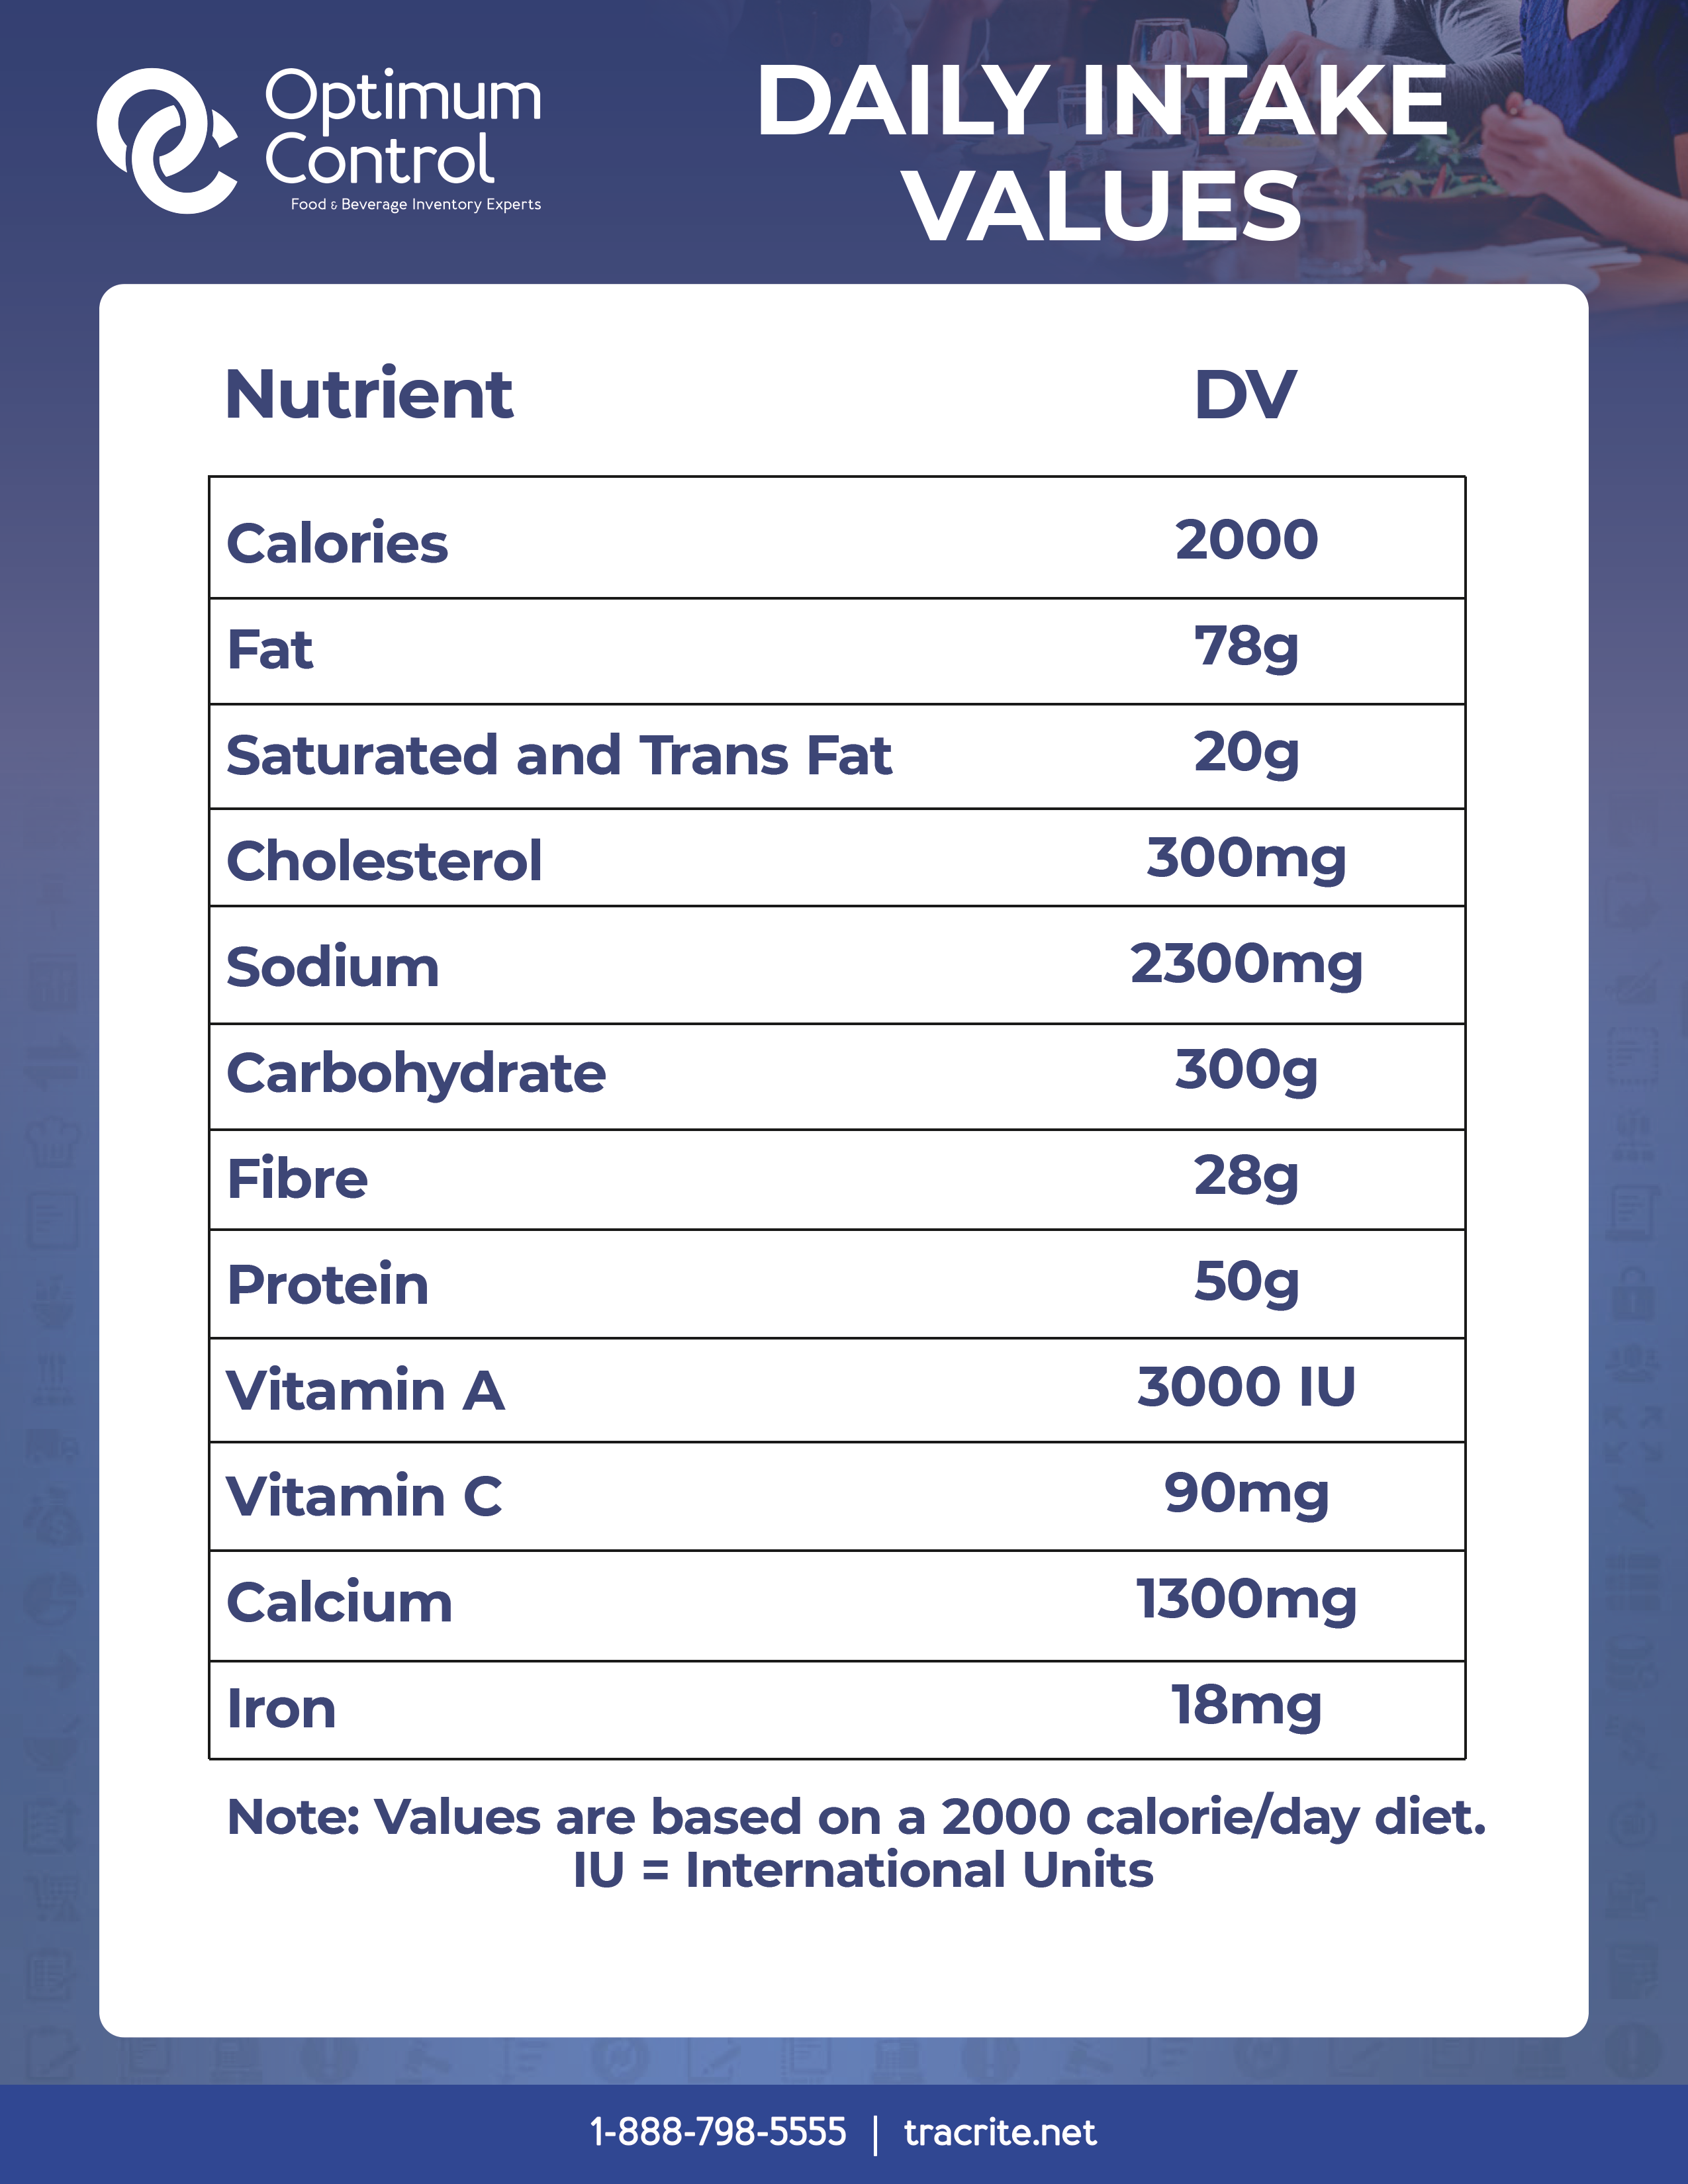 US Daily Intake Values